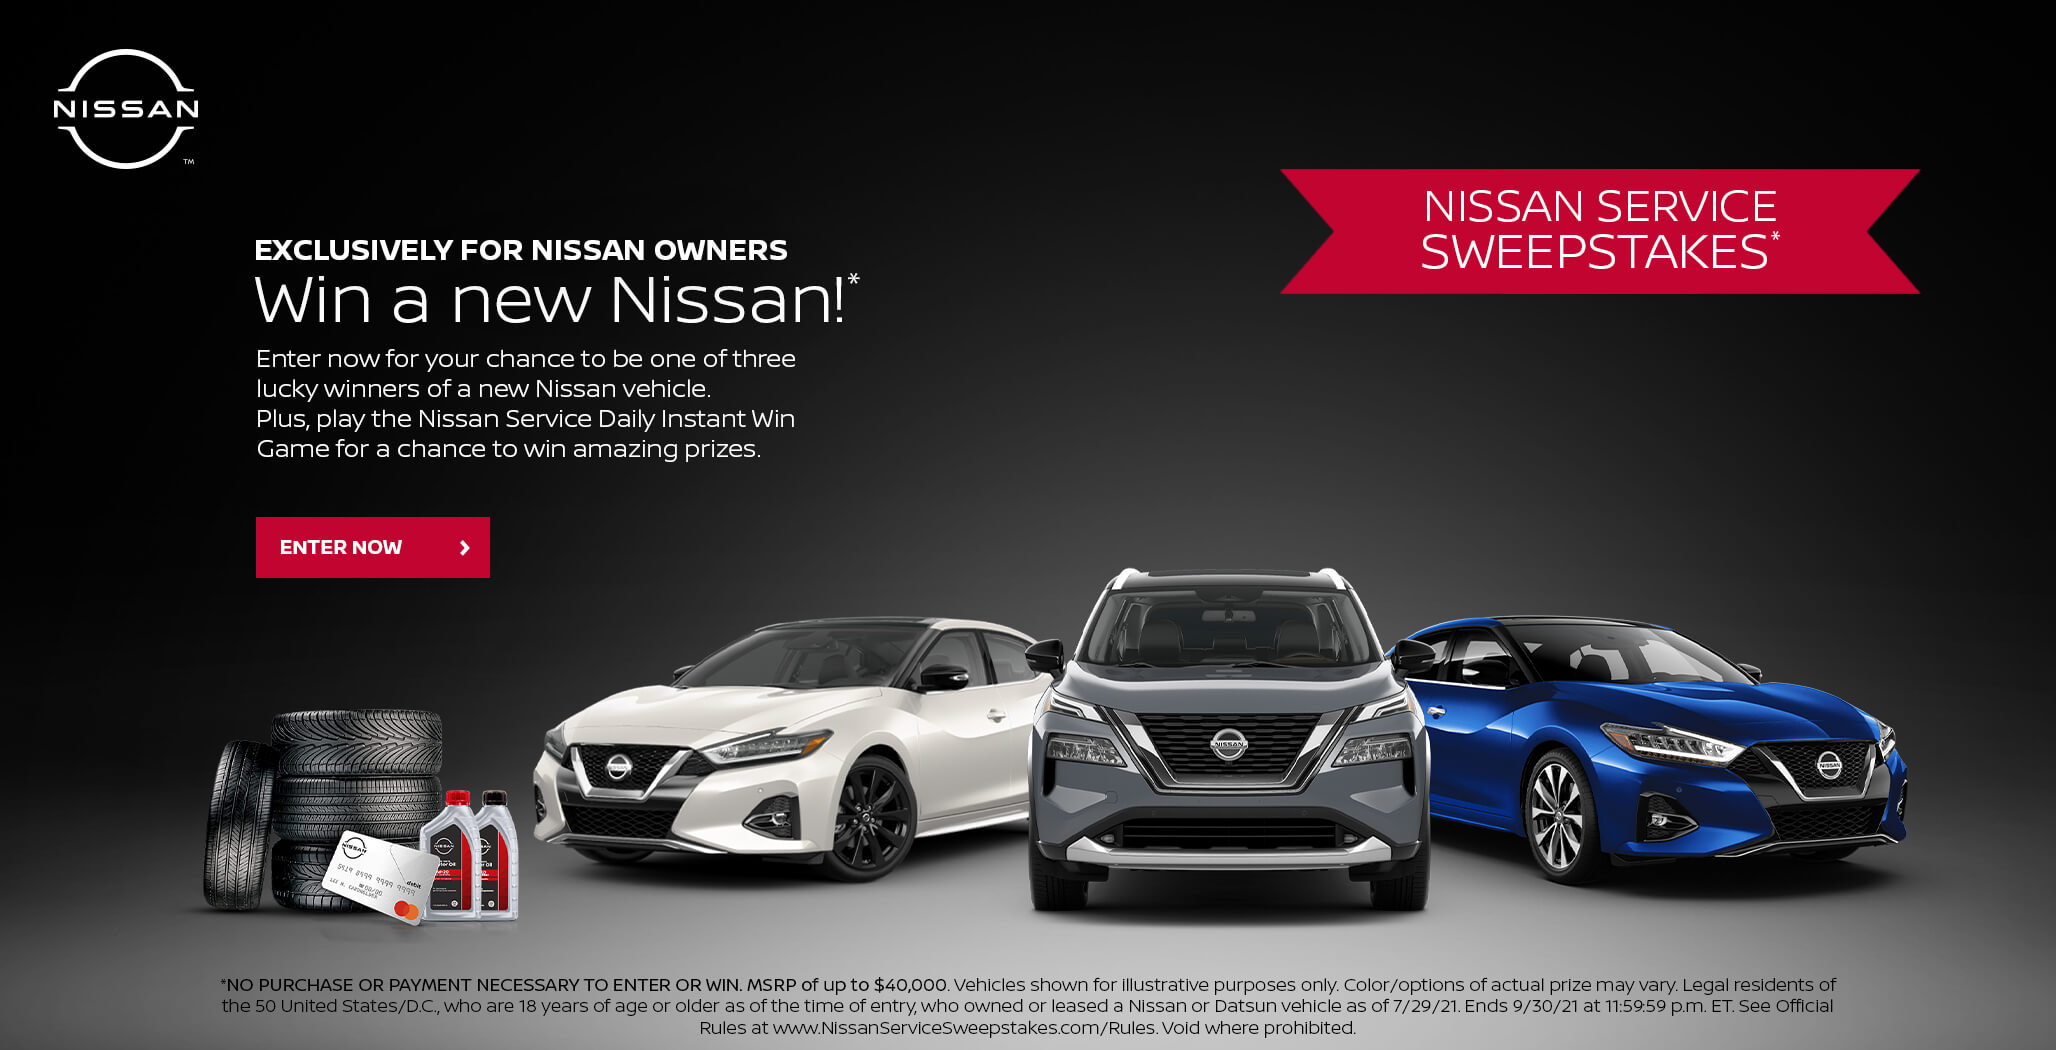 Win a new Nissan